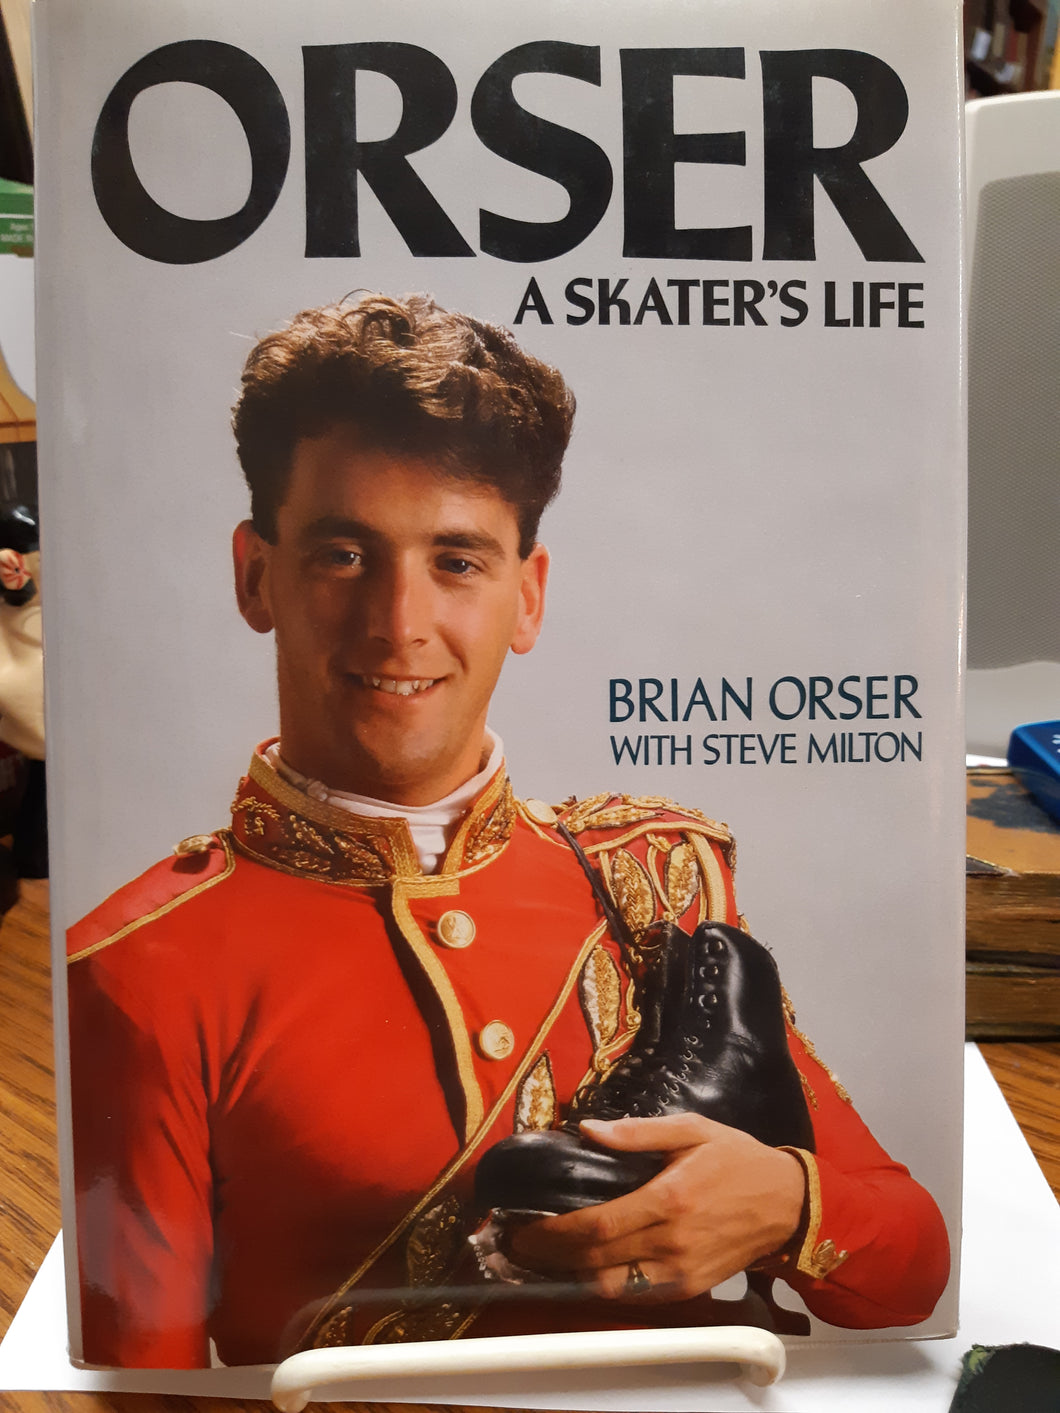 Orser A Skater's Life by Brian Orser and Steve Milton